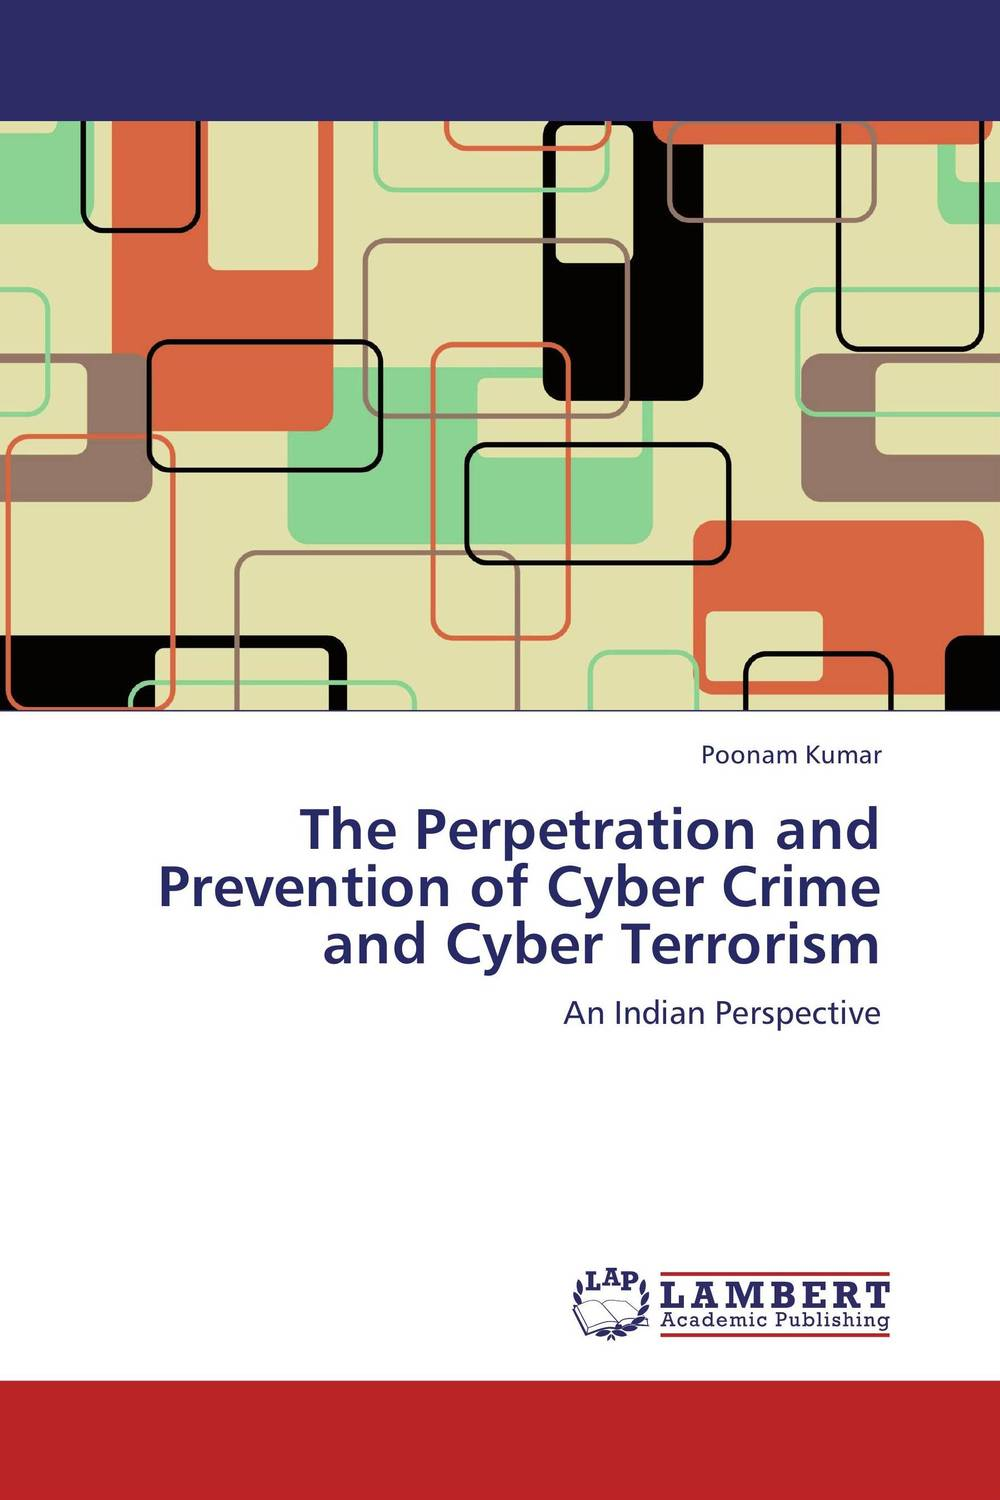 The Perpetration and Prevention of Cyber Crime and Cyber Terrorism heroin organized crime and the making of modern turkey